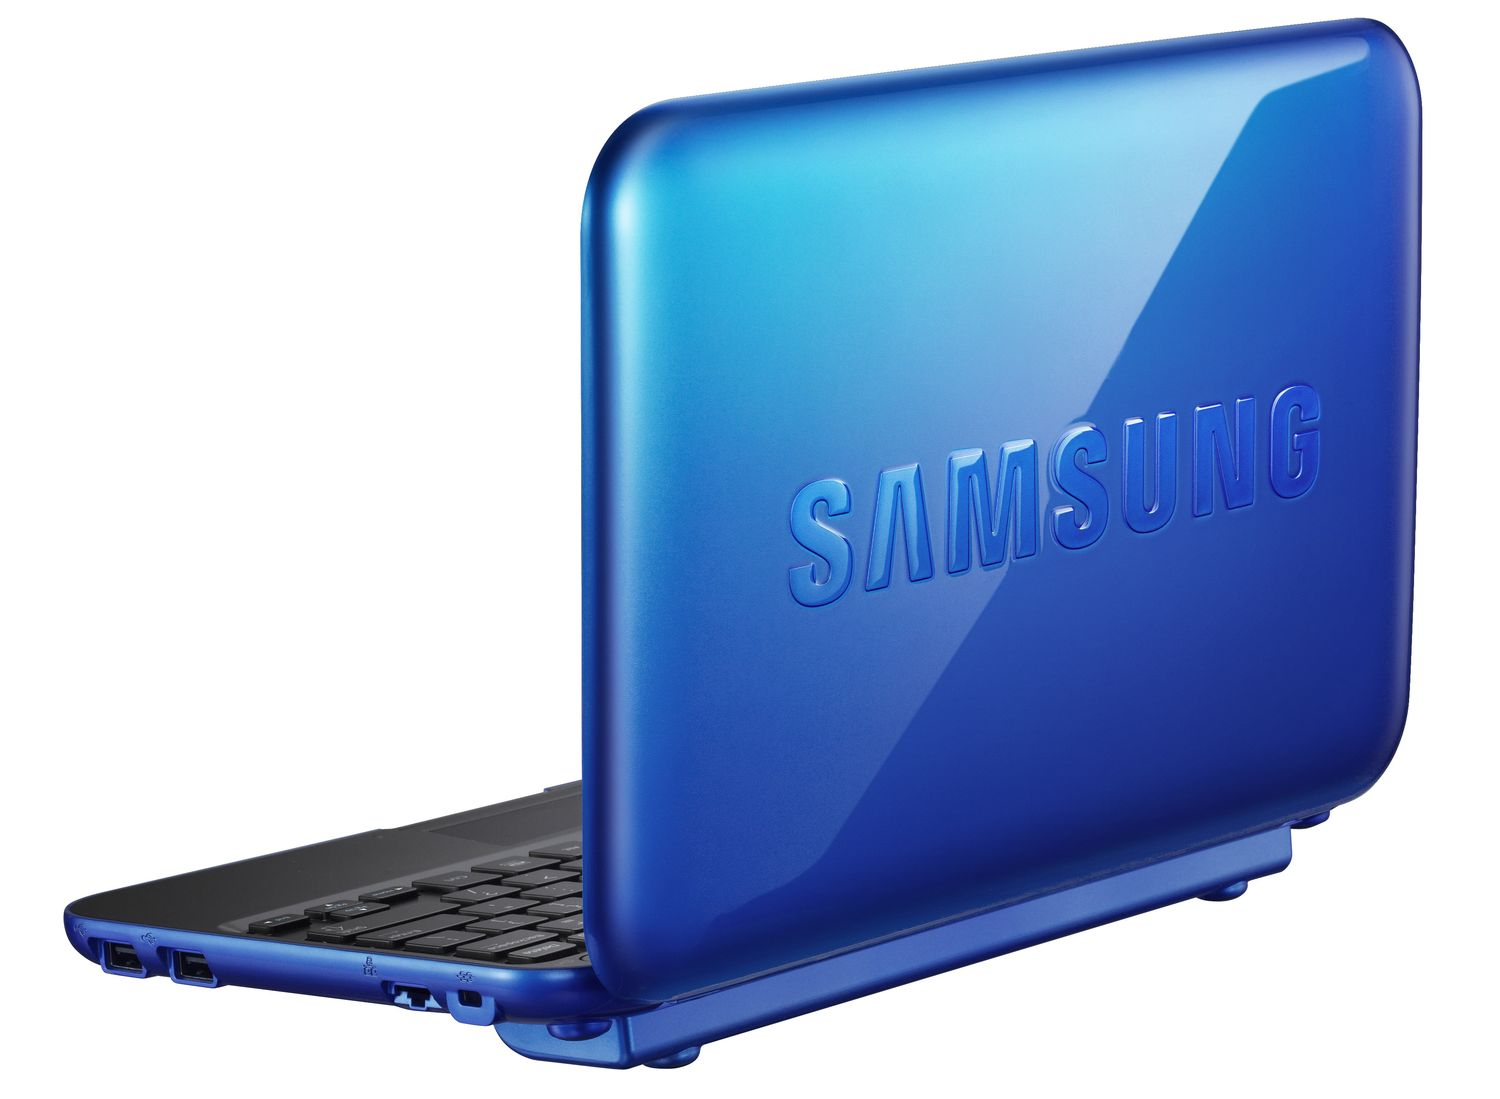 Samsung NS310 netbook